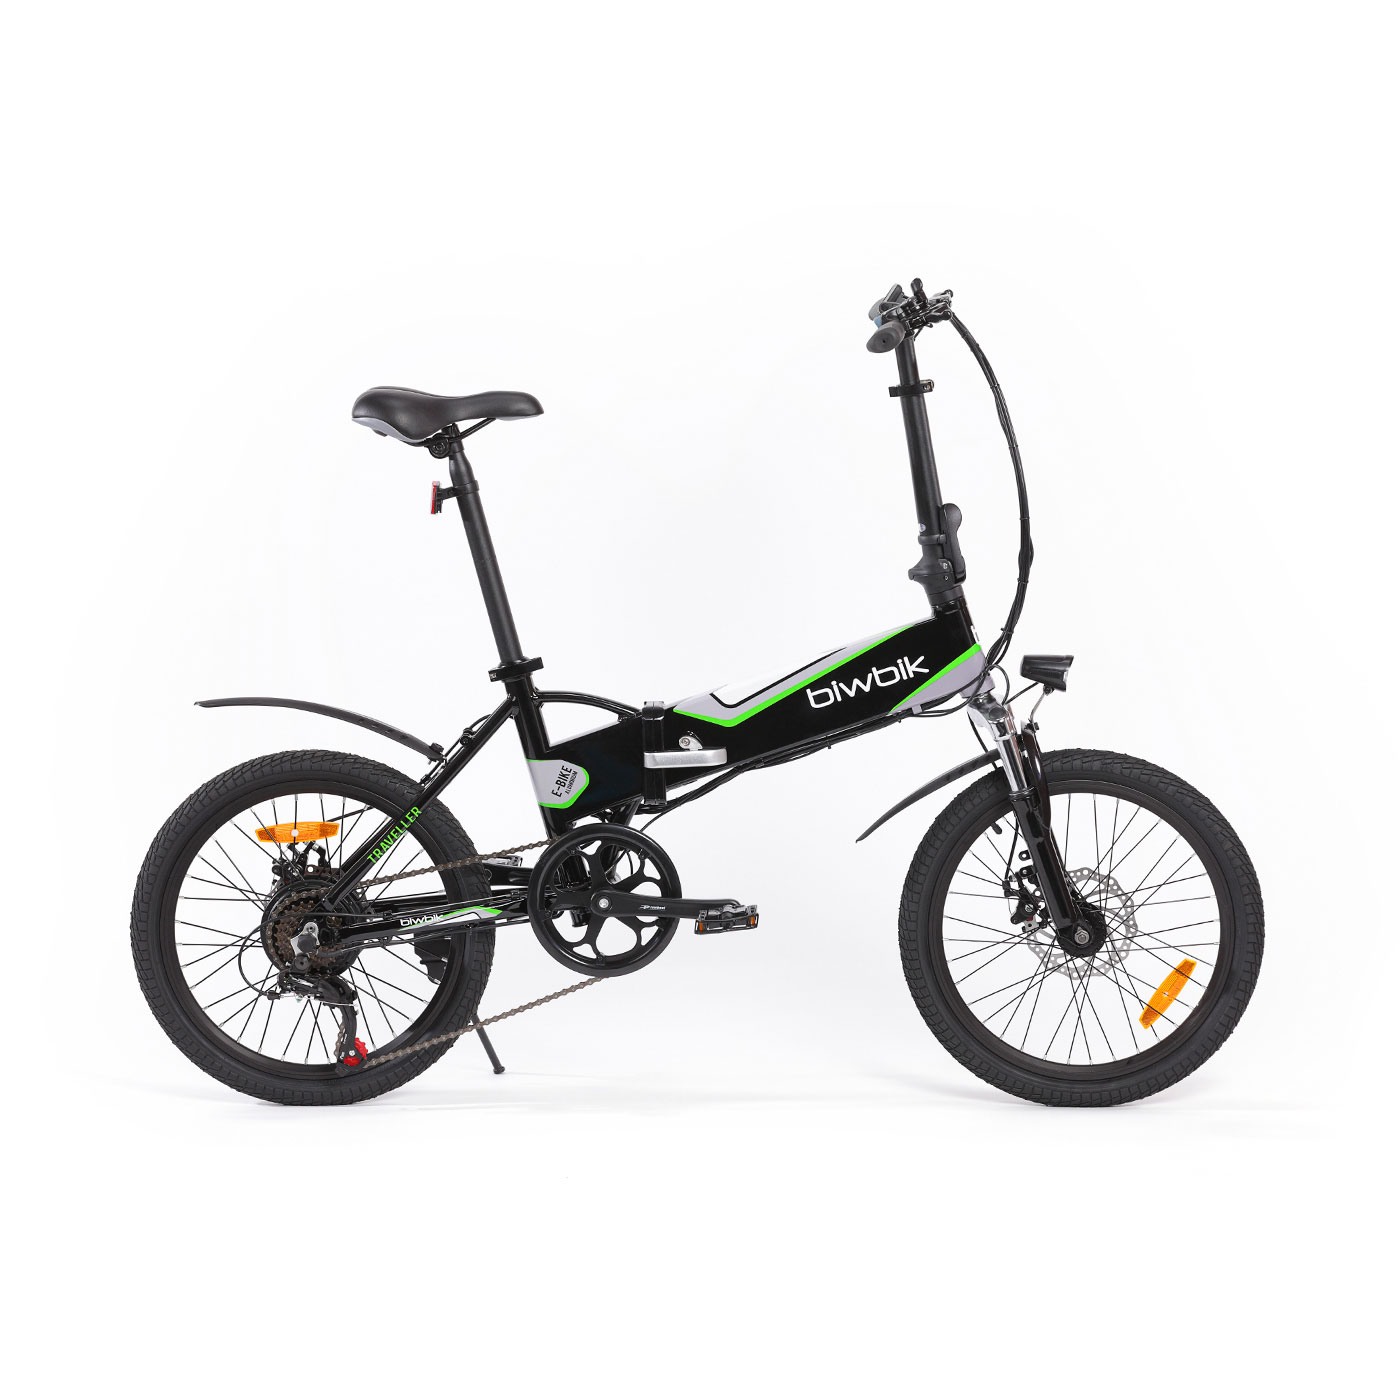 Bicyclette électrique pliable Traveller black 2.0